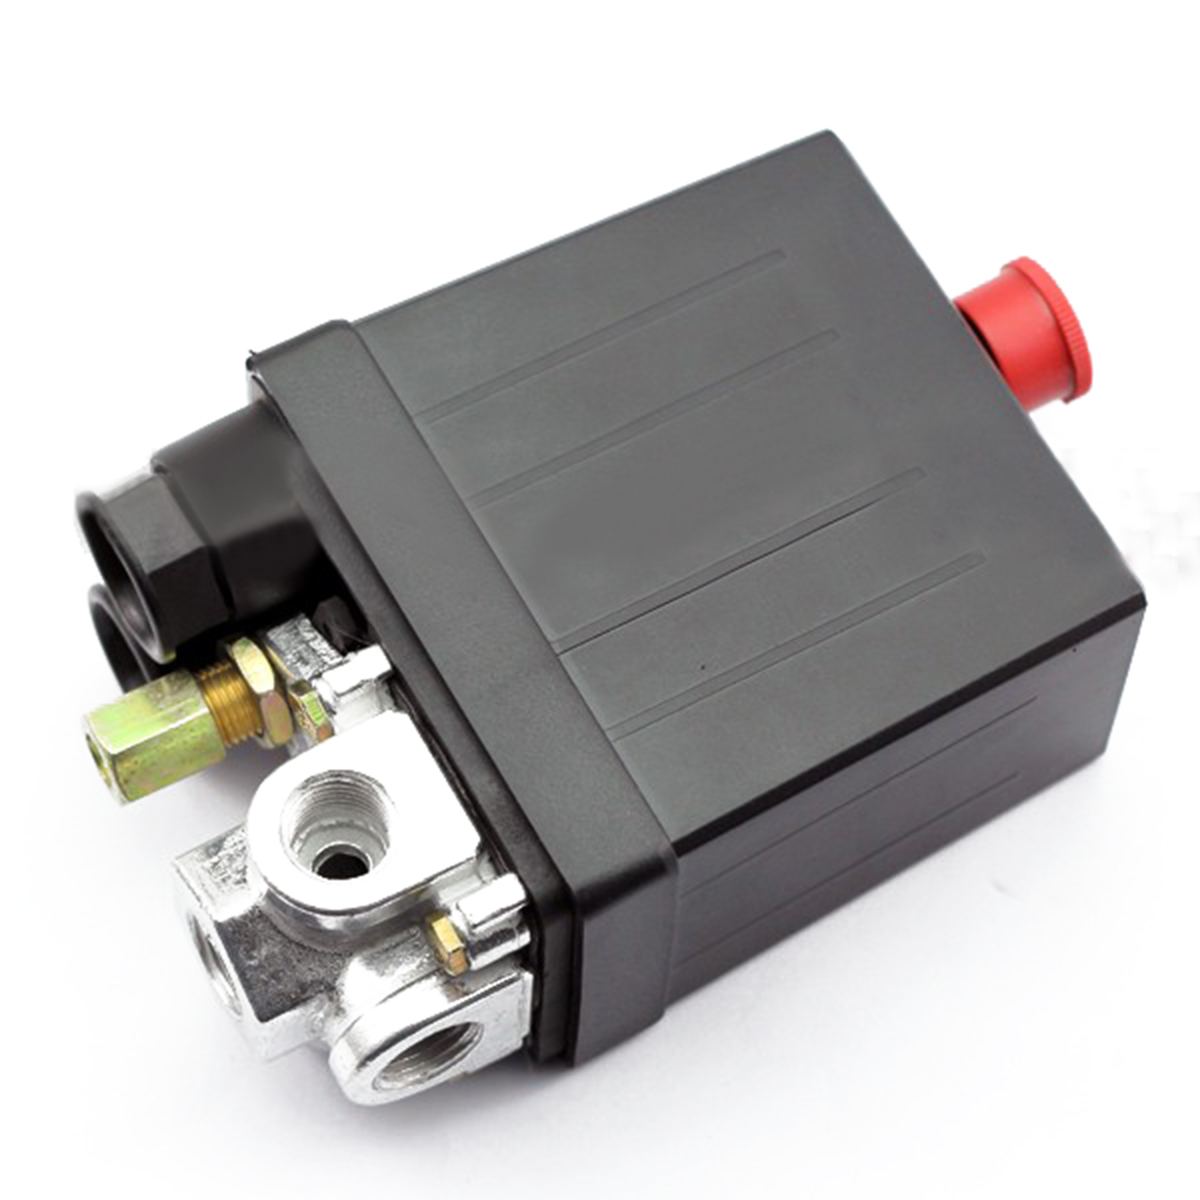 Practical Heavy Duty Air Compressor Pressure Switch Auto Control Valve 240V 16A 90 PSI -120 PSI Mayitr high quality heavy duty air compressor pressure switch control valve 90 psi 120 psi air compressor switch control dropshipping